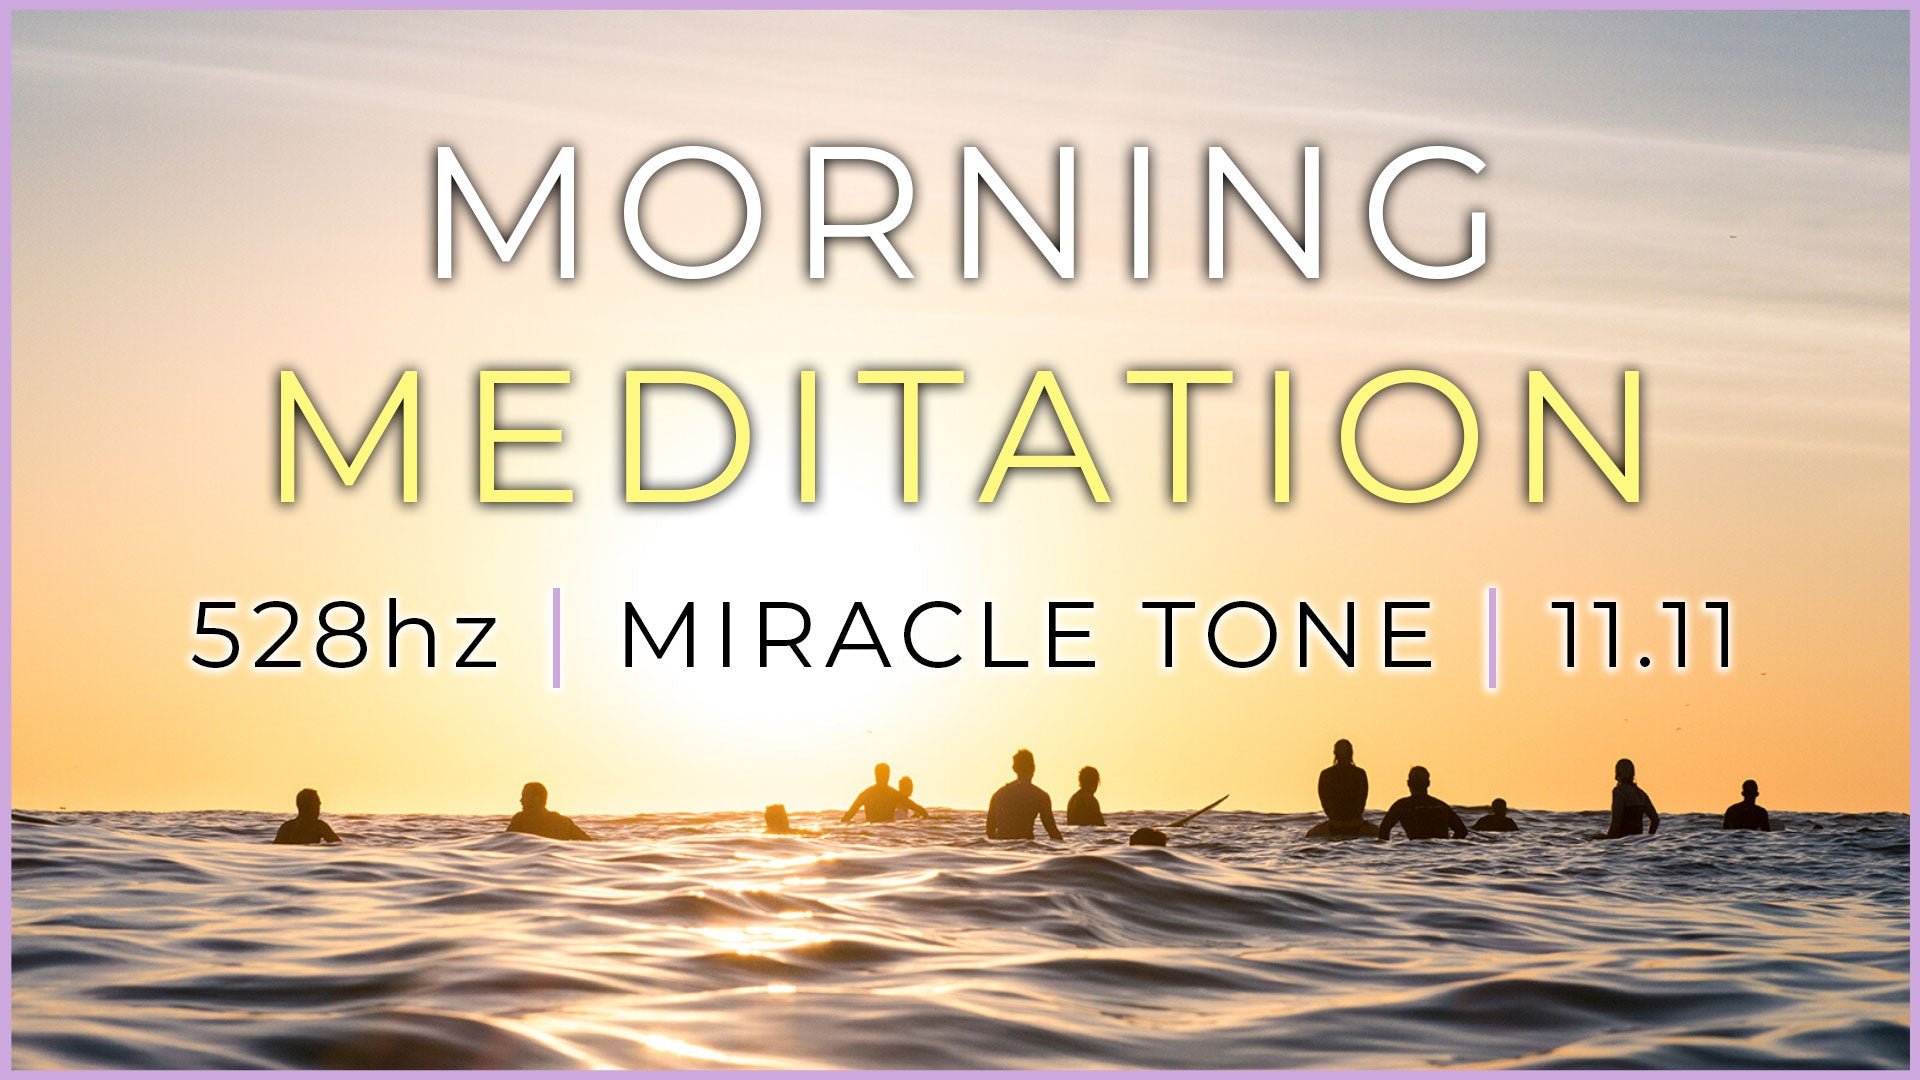 528Hz MIRACLE TONE | Boost Positive Energy | Guided Morning Meditation Music ♡